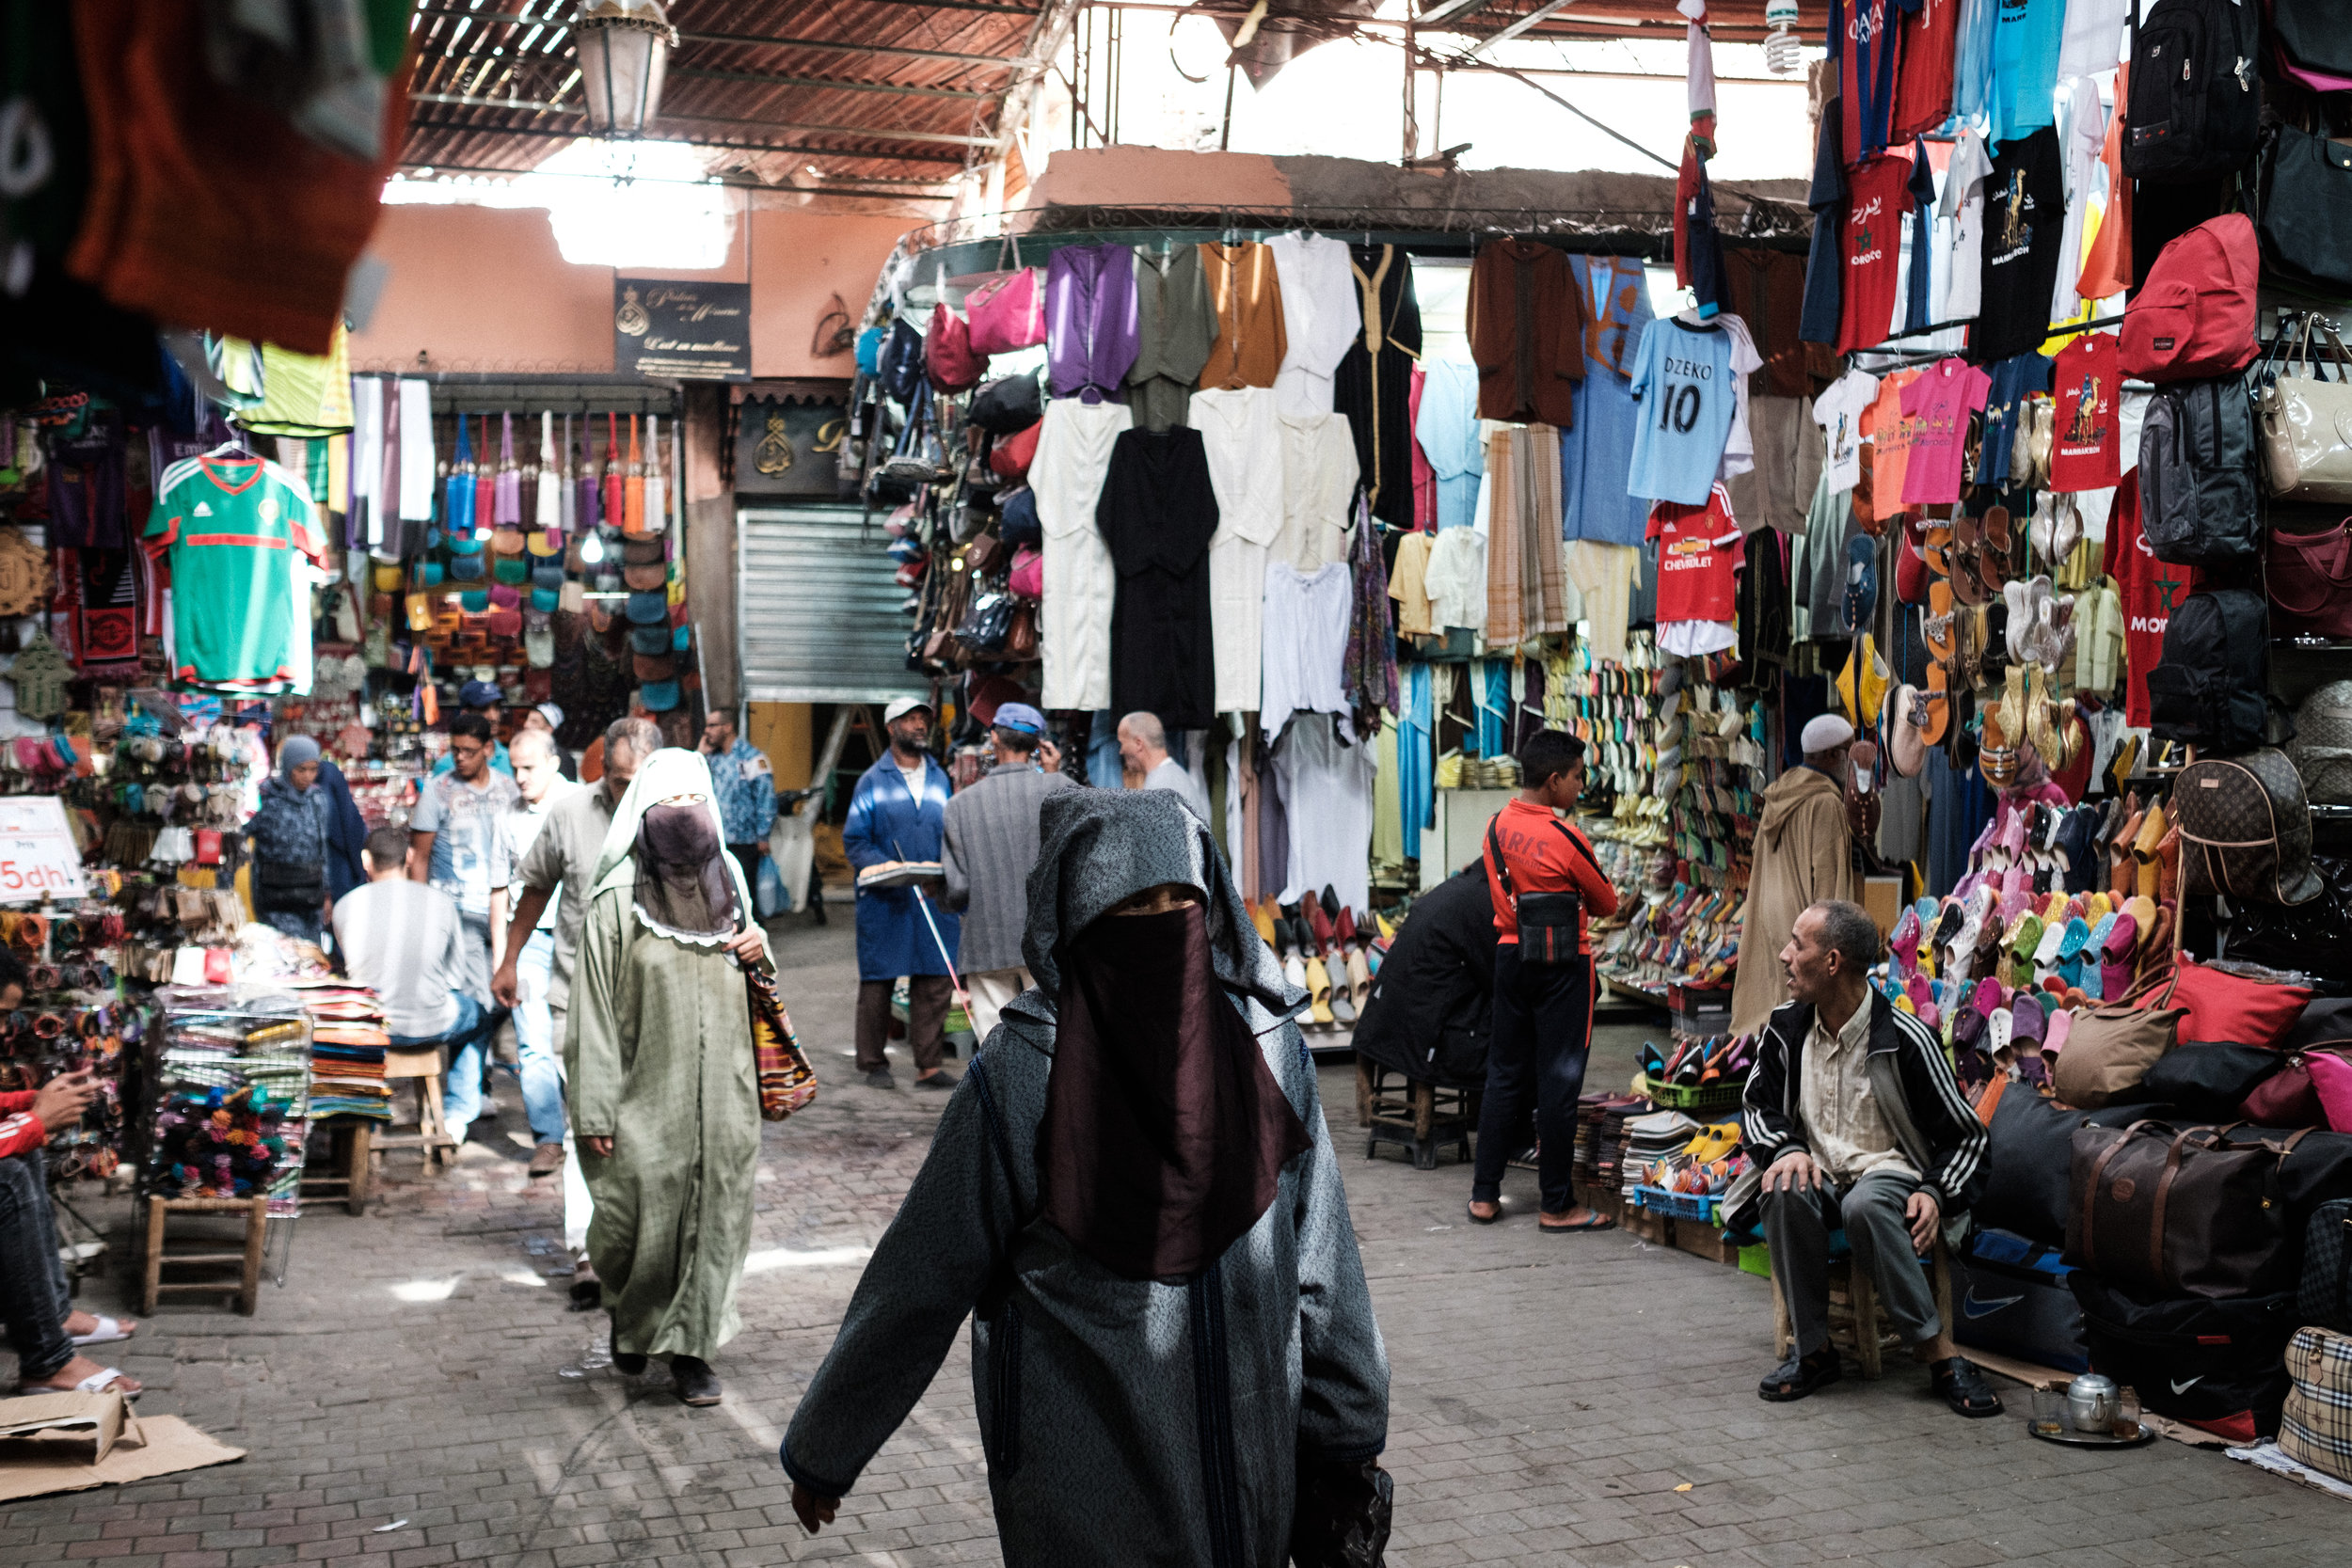 Countless shops in a Medina District Souk near the Jemaaa el-Fna Square